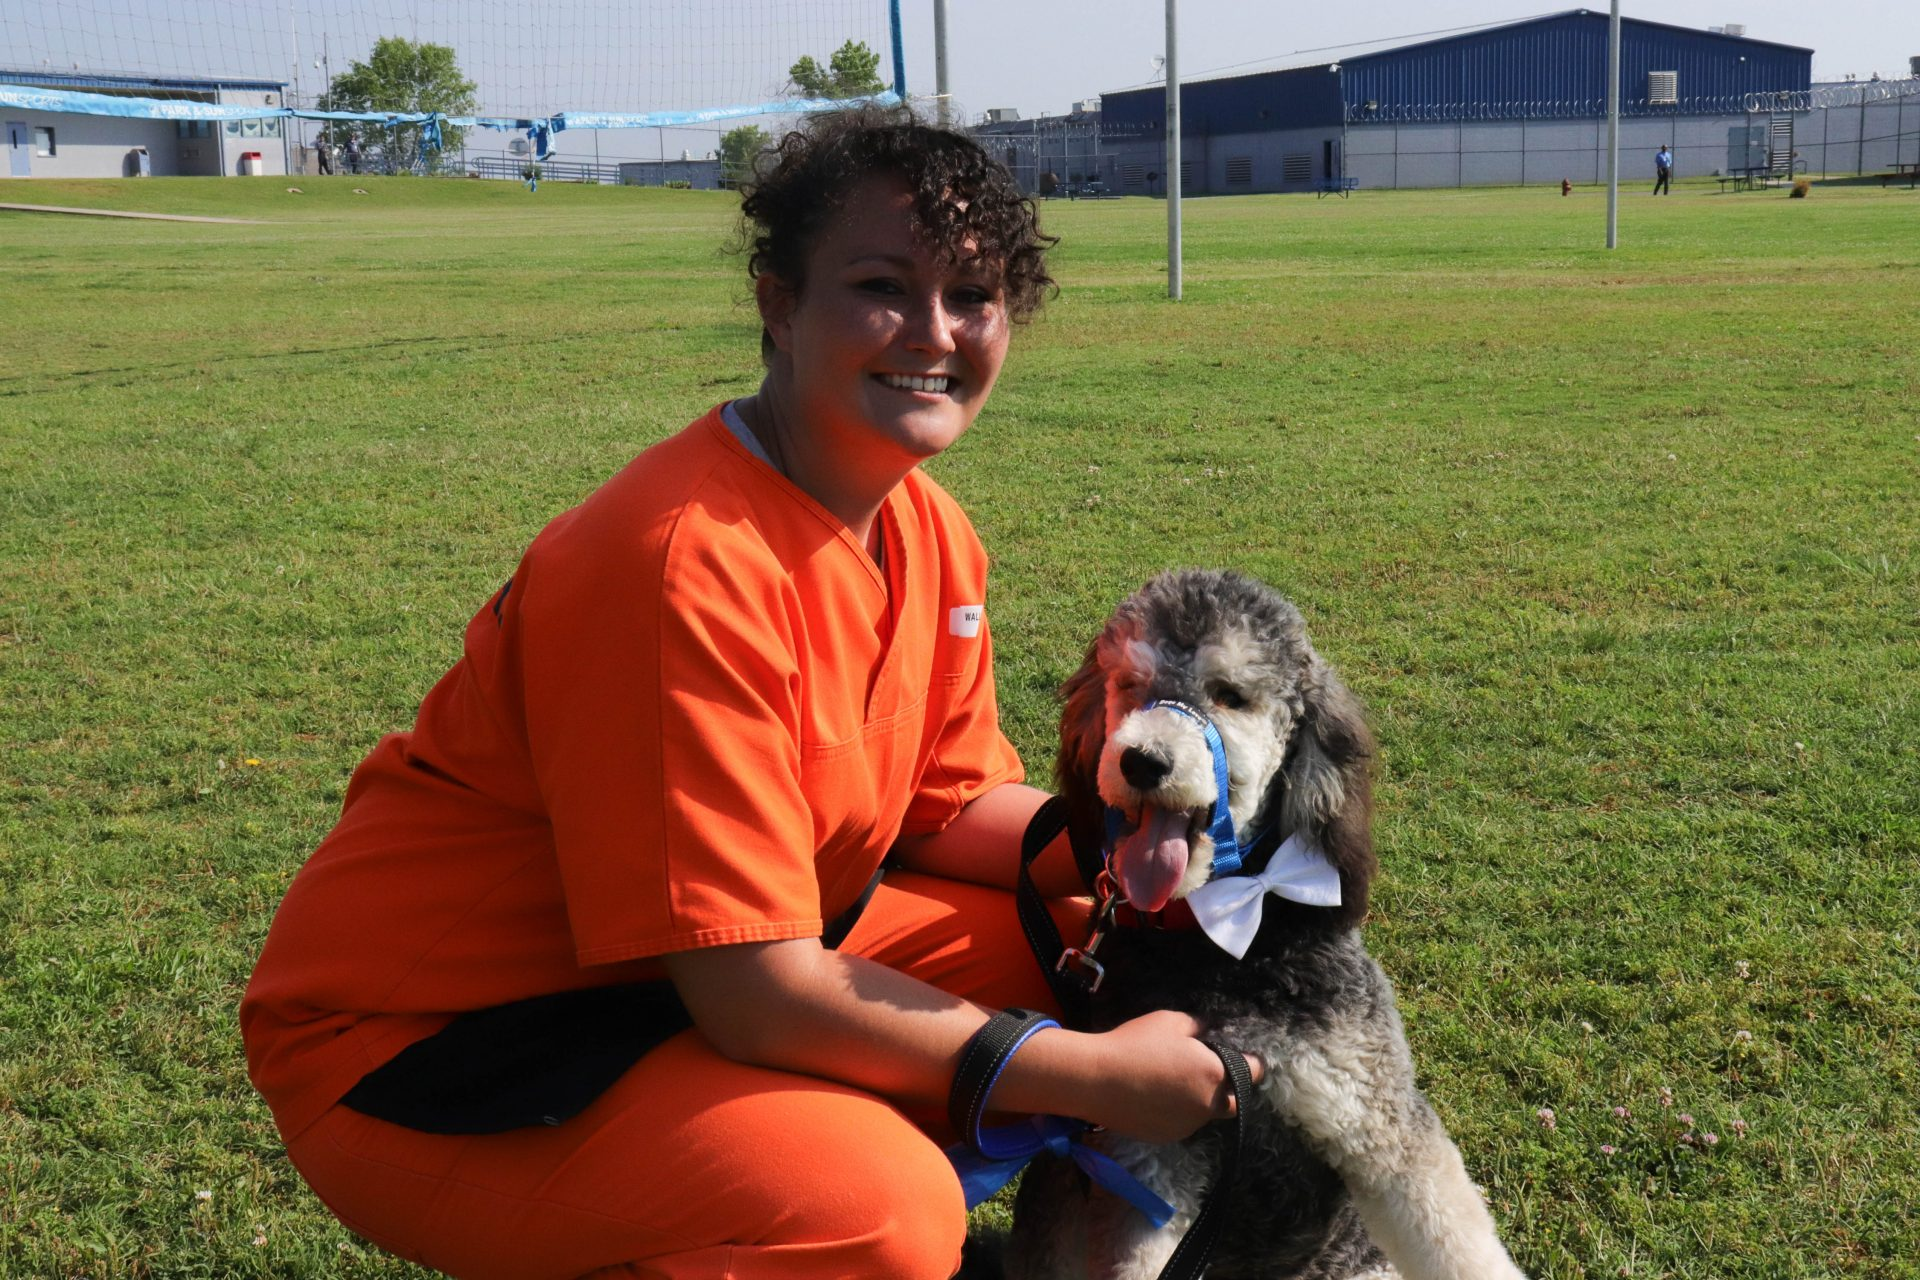 Inmate Lacey Wallace poses with her dog trainee, McAlester, on the yard in Mabel Bassett Correctional Center.